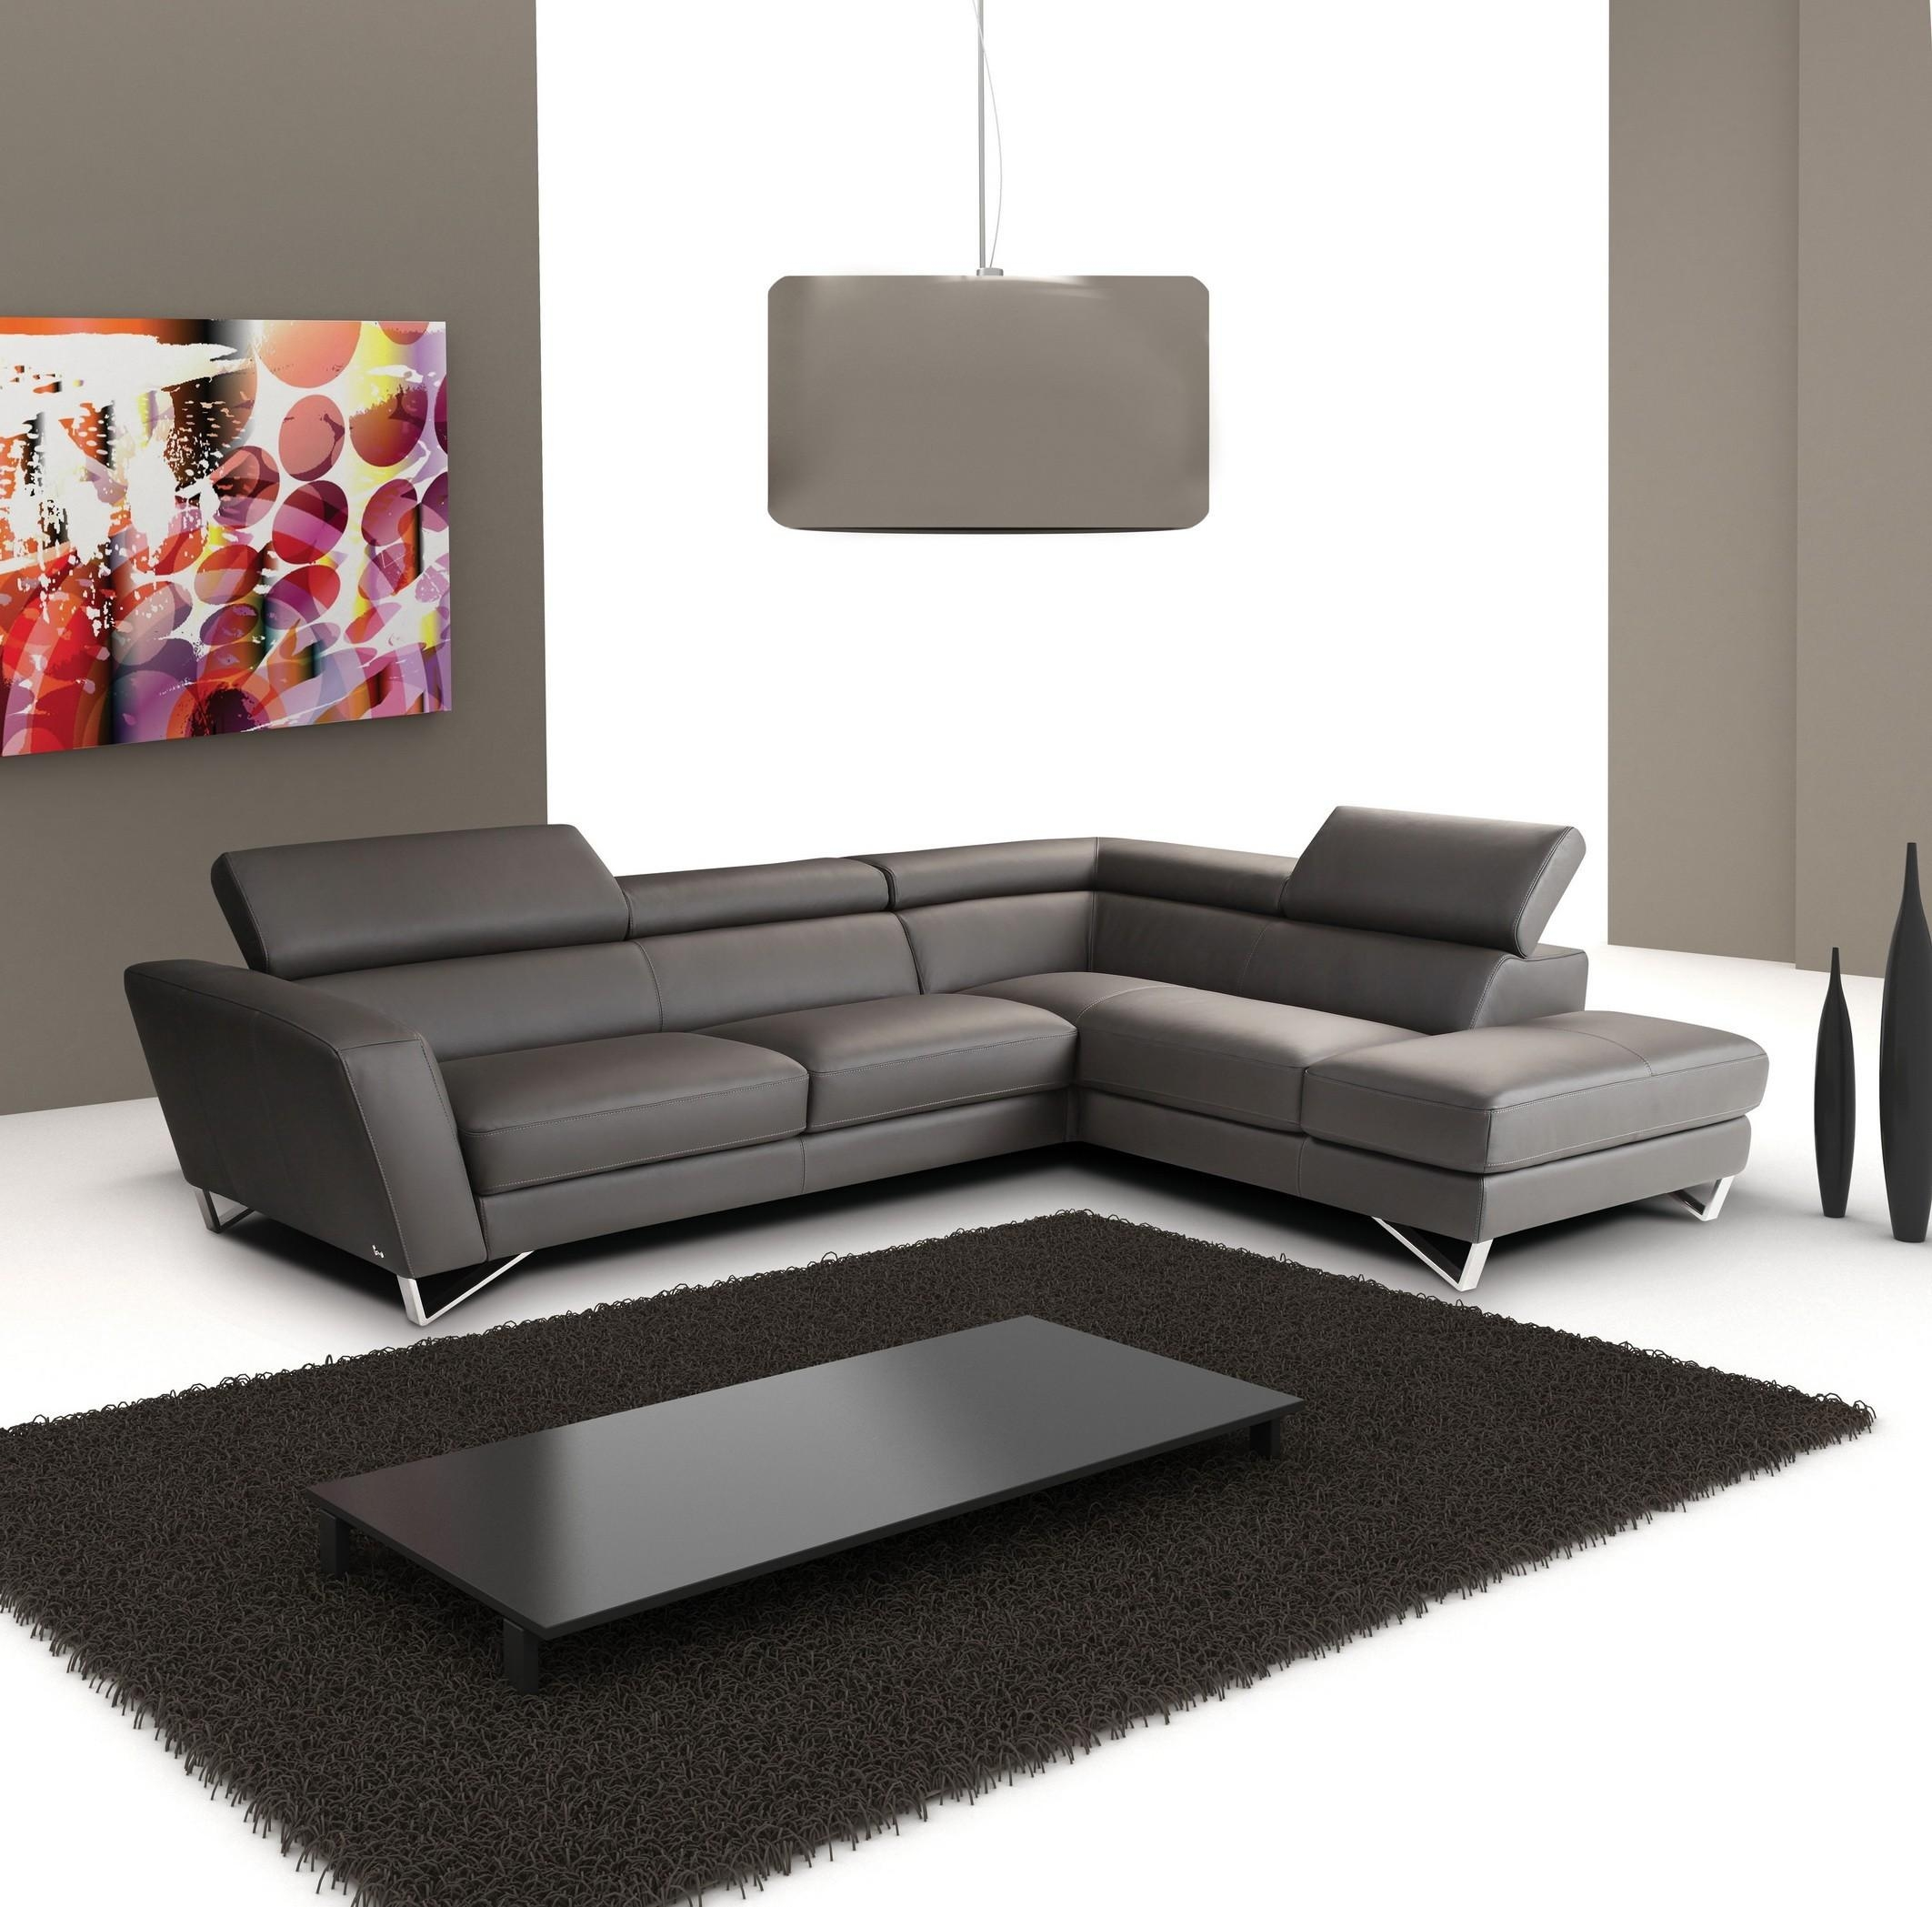 Furniture & Rug: Fancy Sectional Sleeper Sofa For Best Home With Regard To Queen Sofa Sleeper Sectional Microfiber (Image 5 of 20)